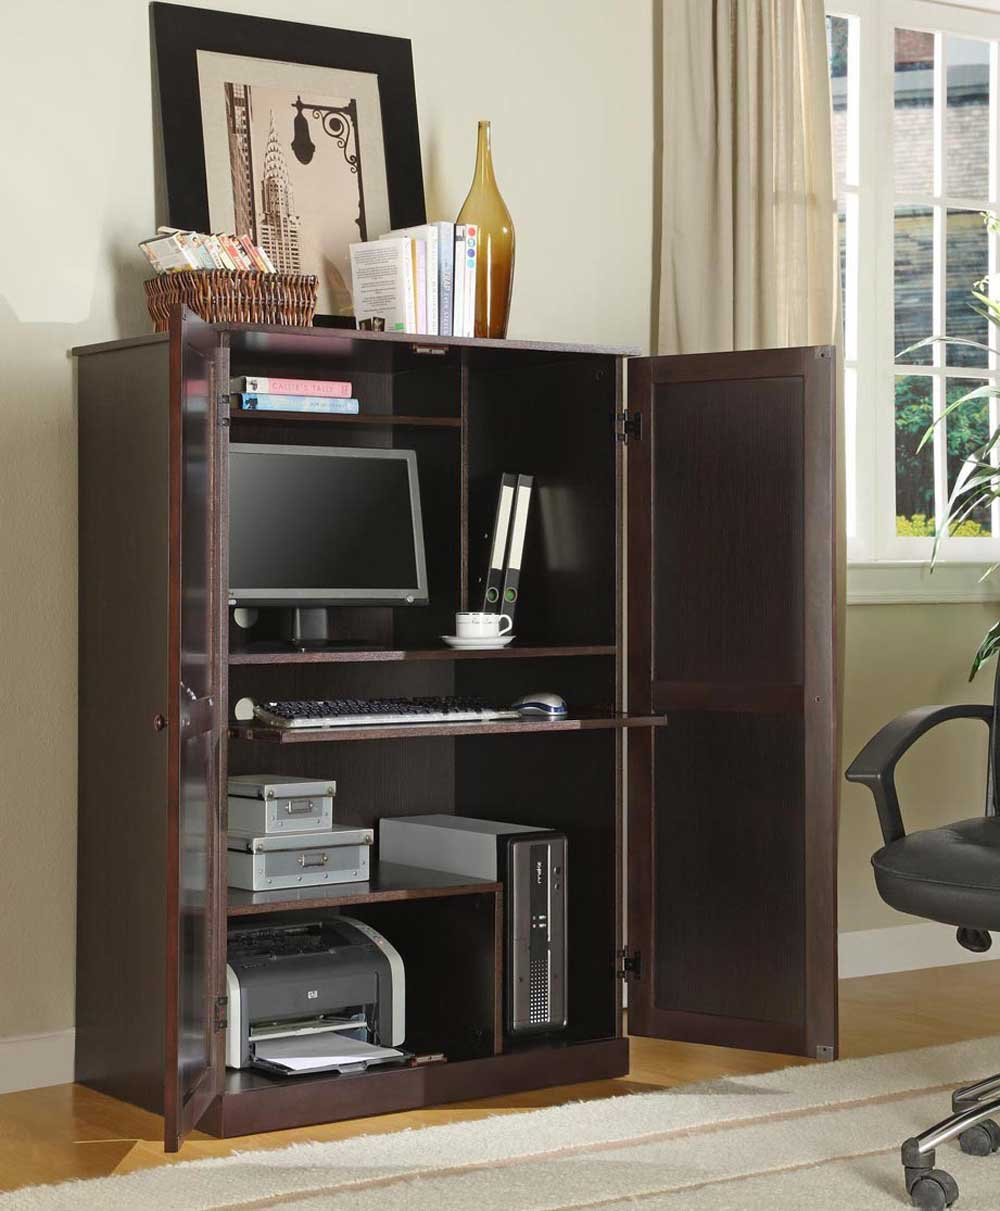 Ikea corner computer armoire office furniture for Meuble informatique